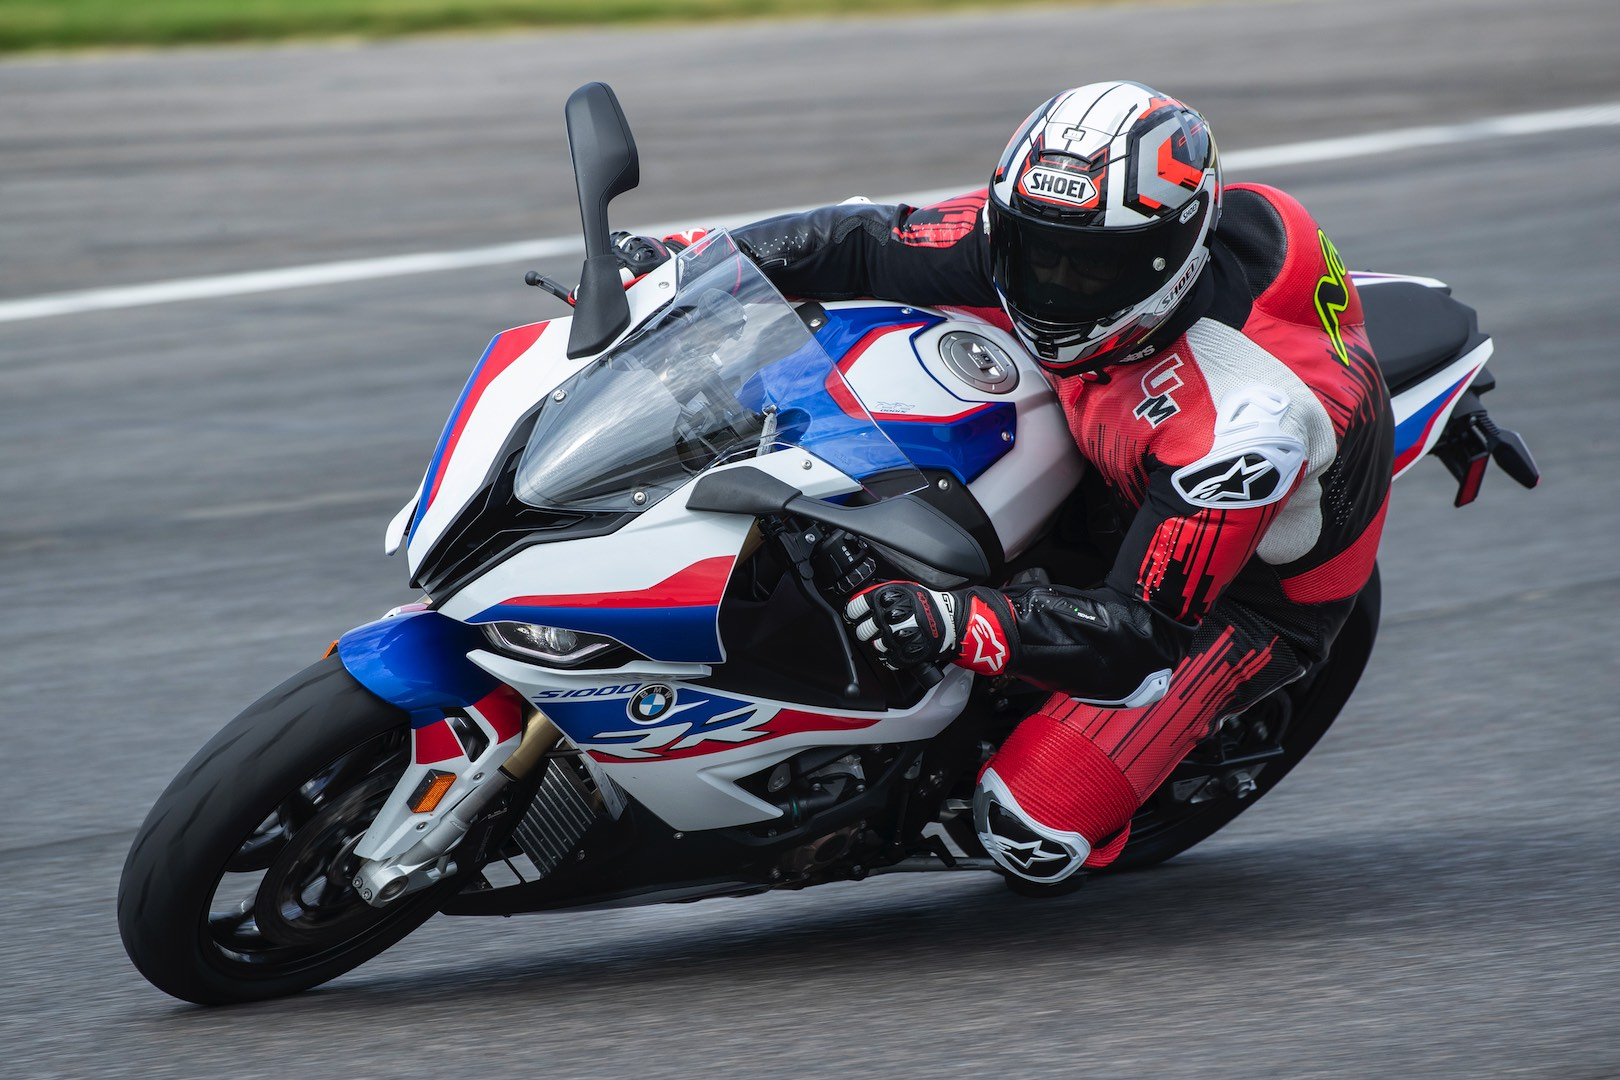 BMW S1000RR 2020 review